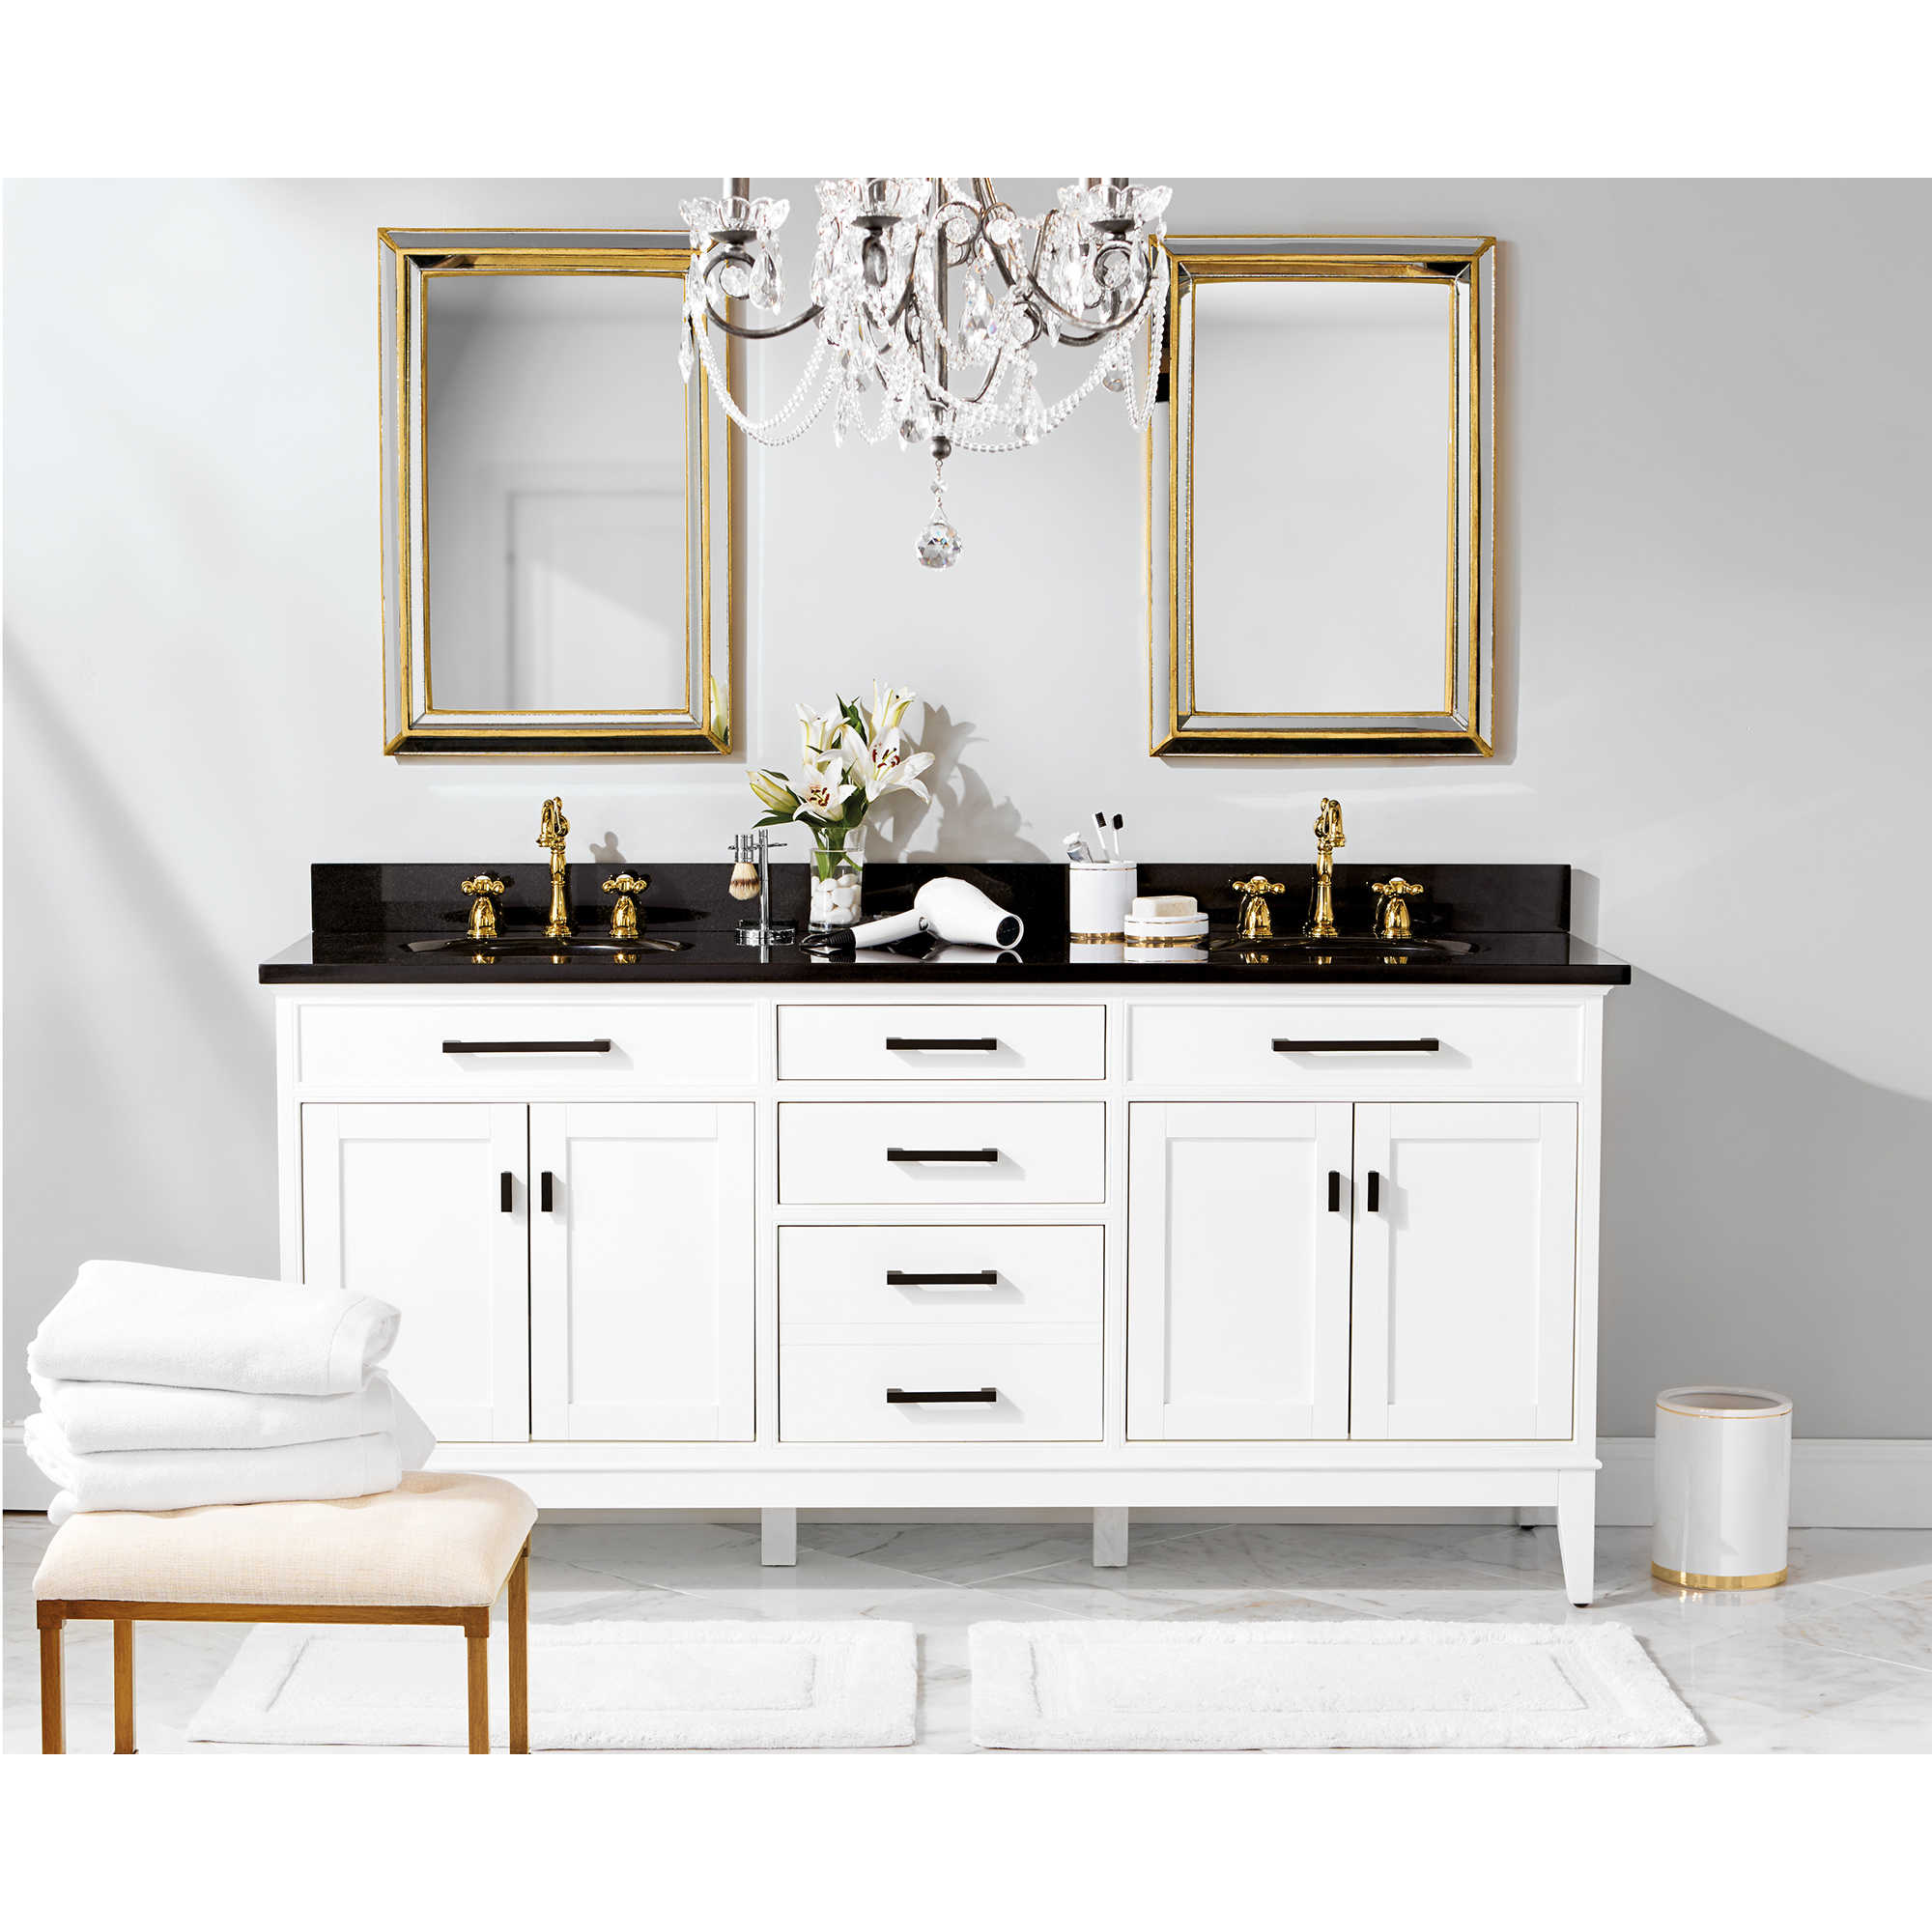 Black and White Glam Bath - Bed Bath & Beyond